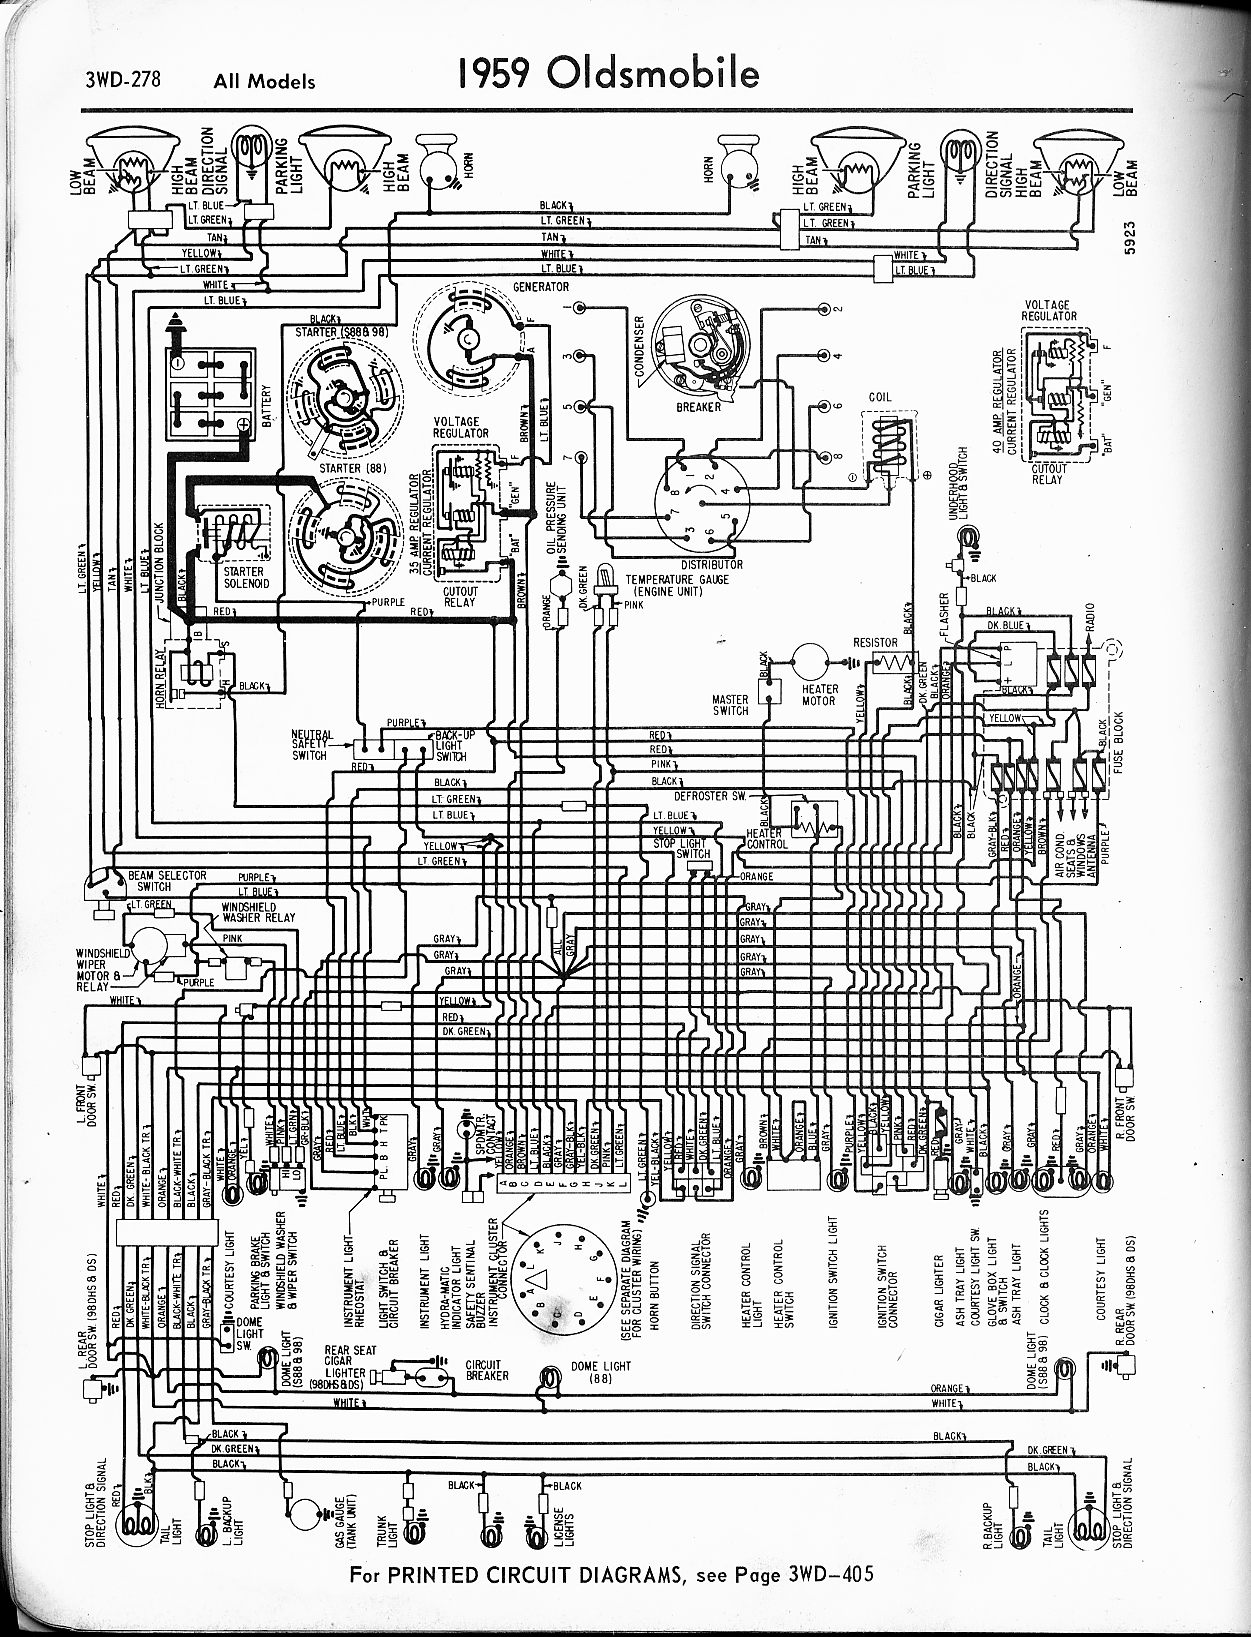 2004 toyota sienna fuse box diagram 35 wiring diagram images 2006 toyota  sienna fuse box diagram